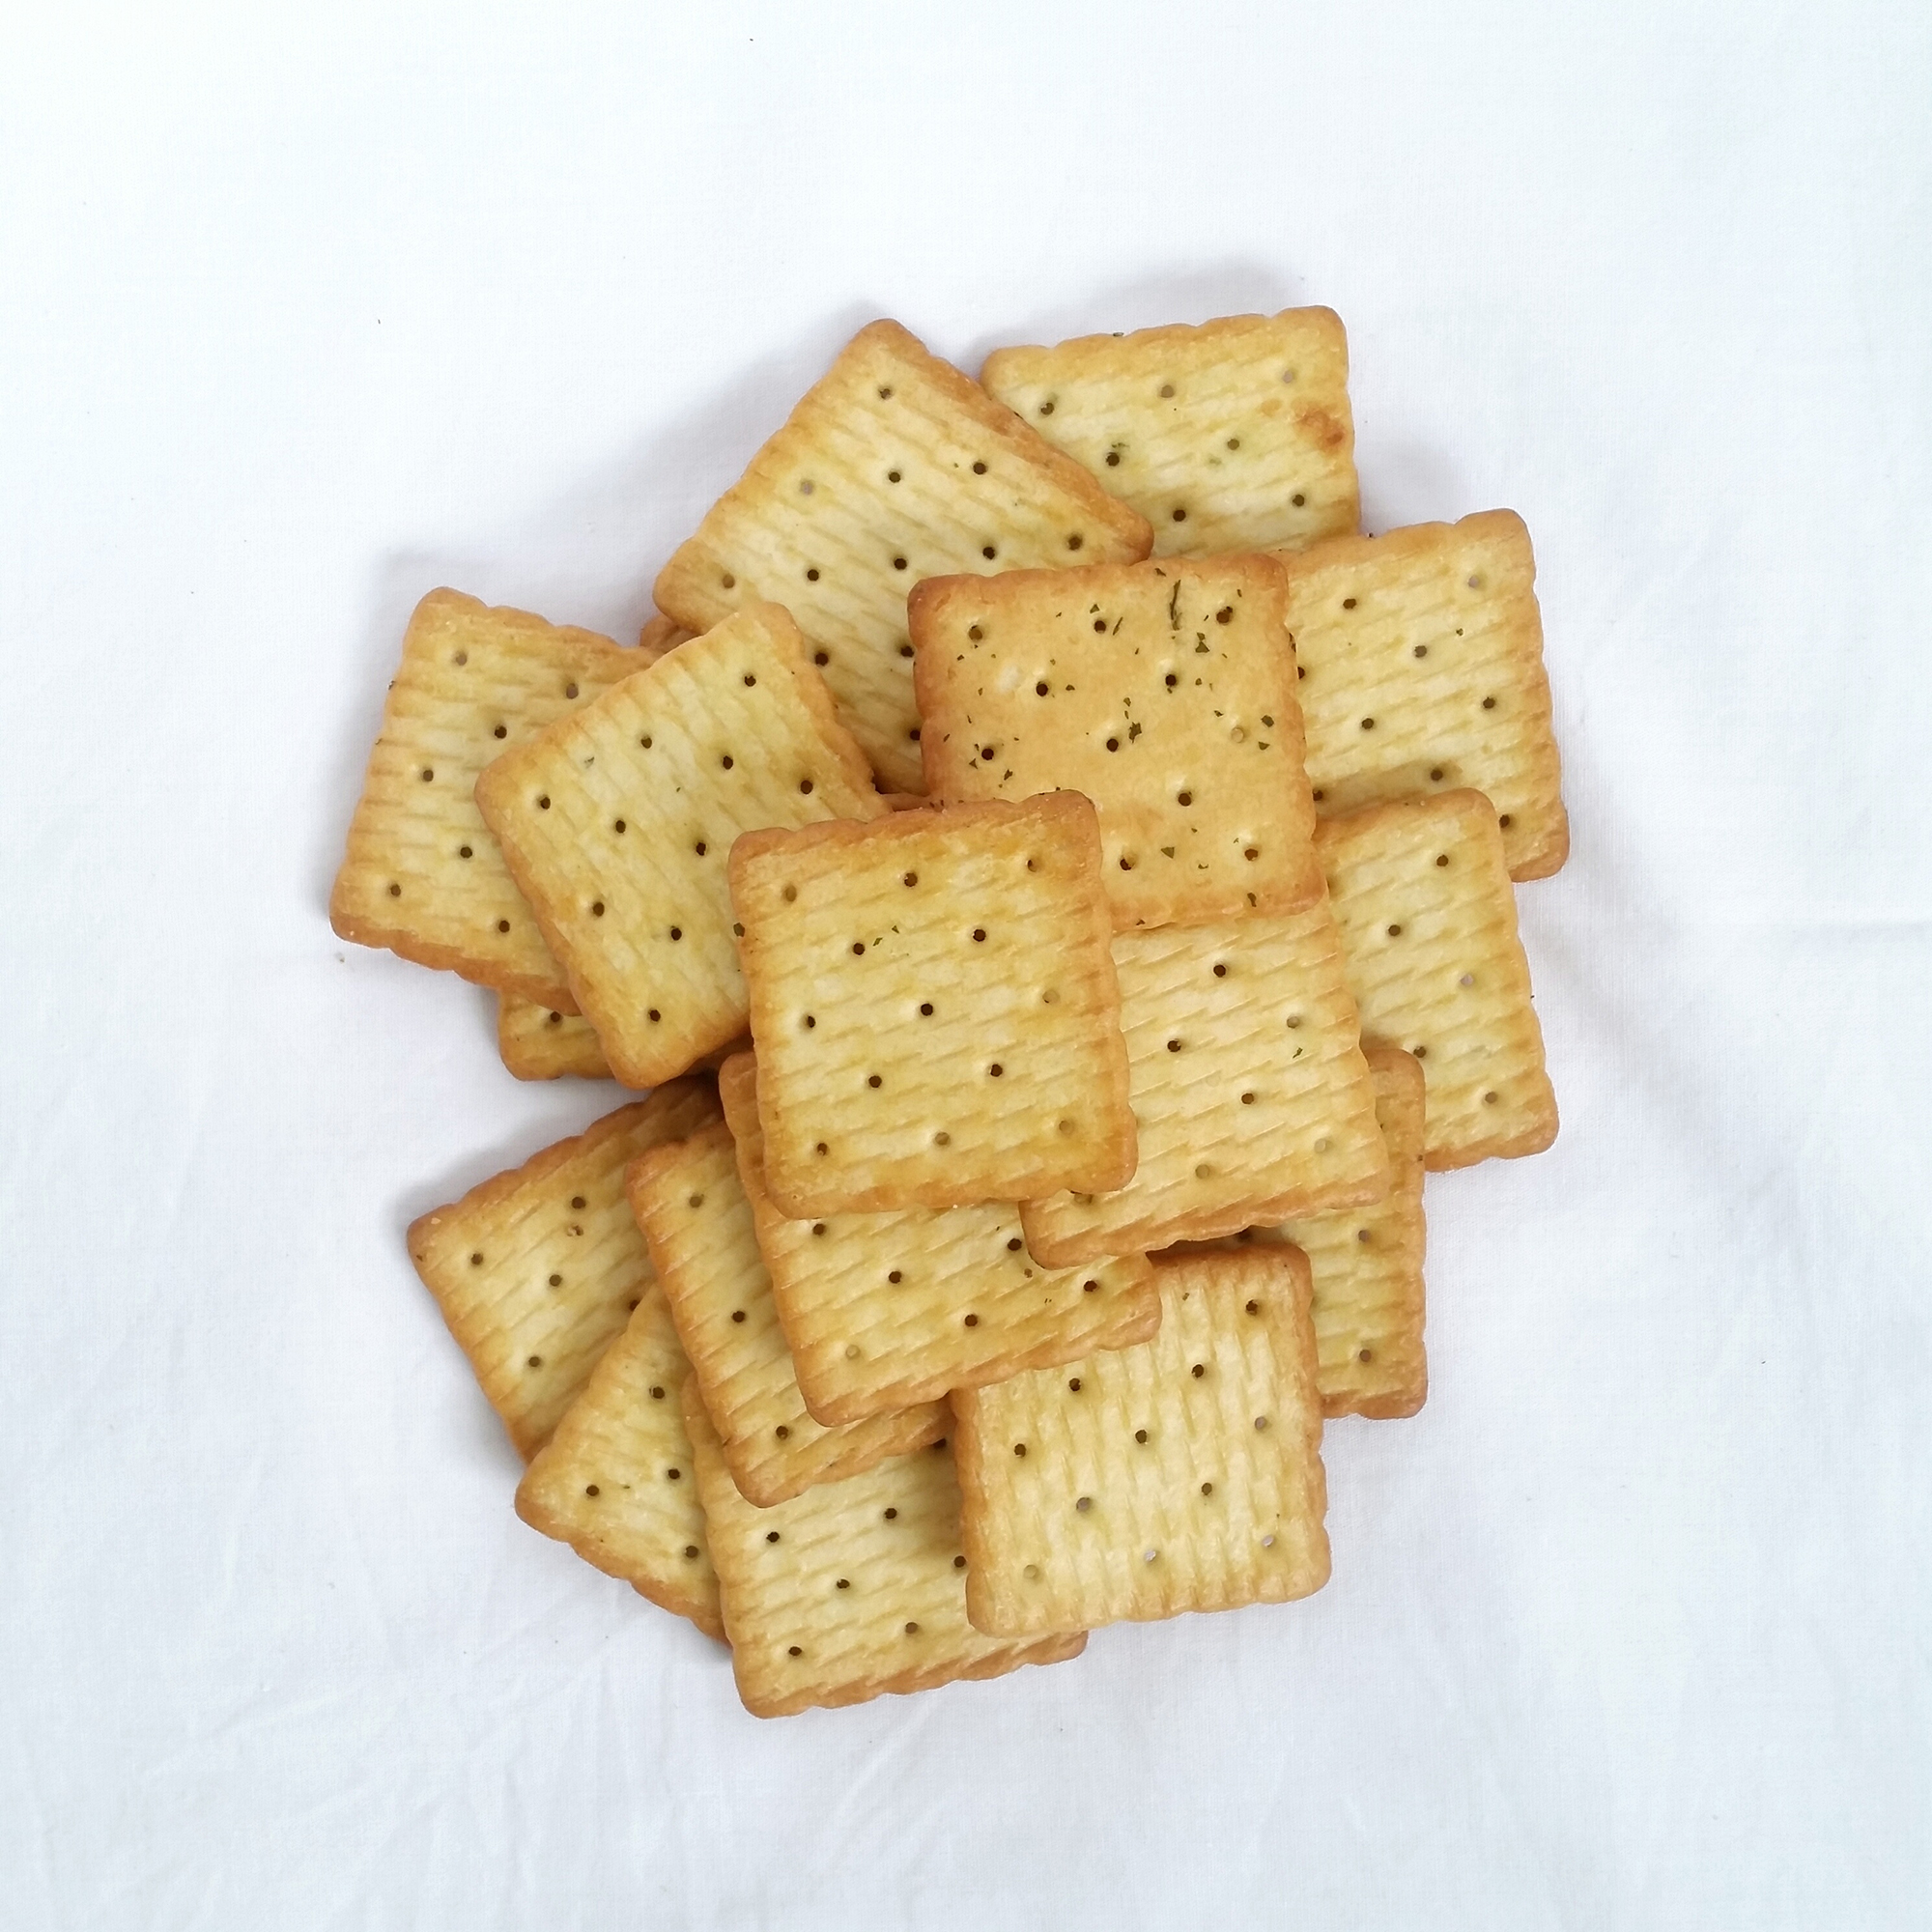 Crackers on a White Background